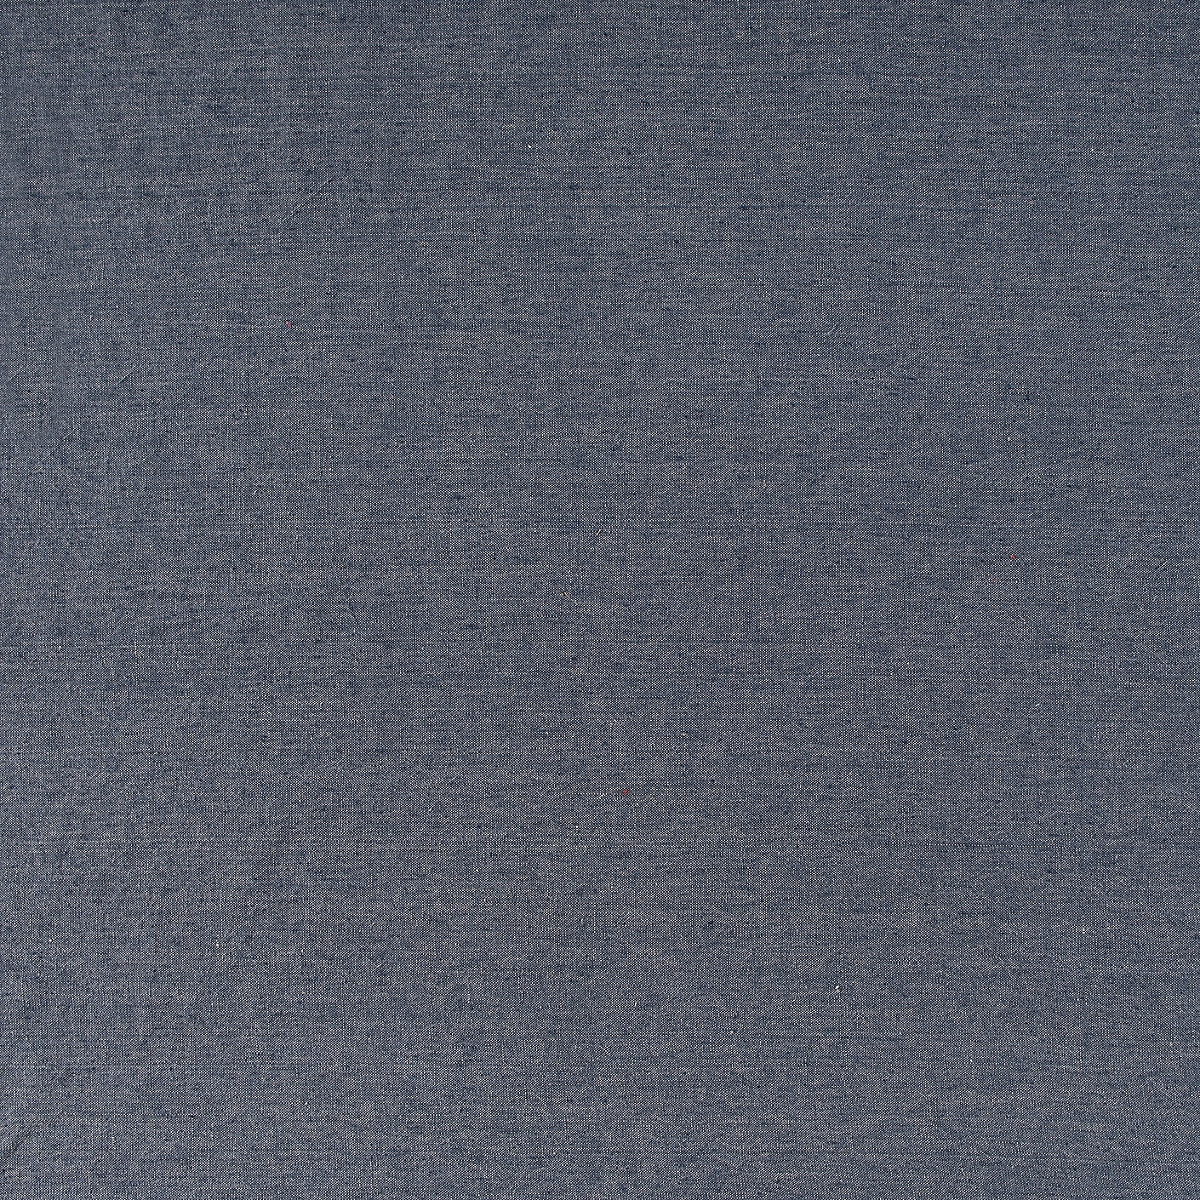 Oxford Linen: Denim (fabric yardage)